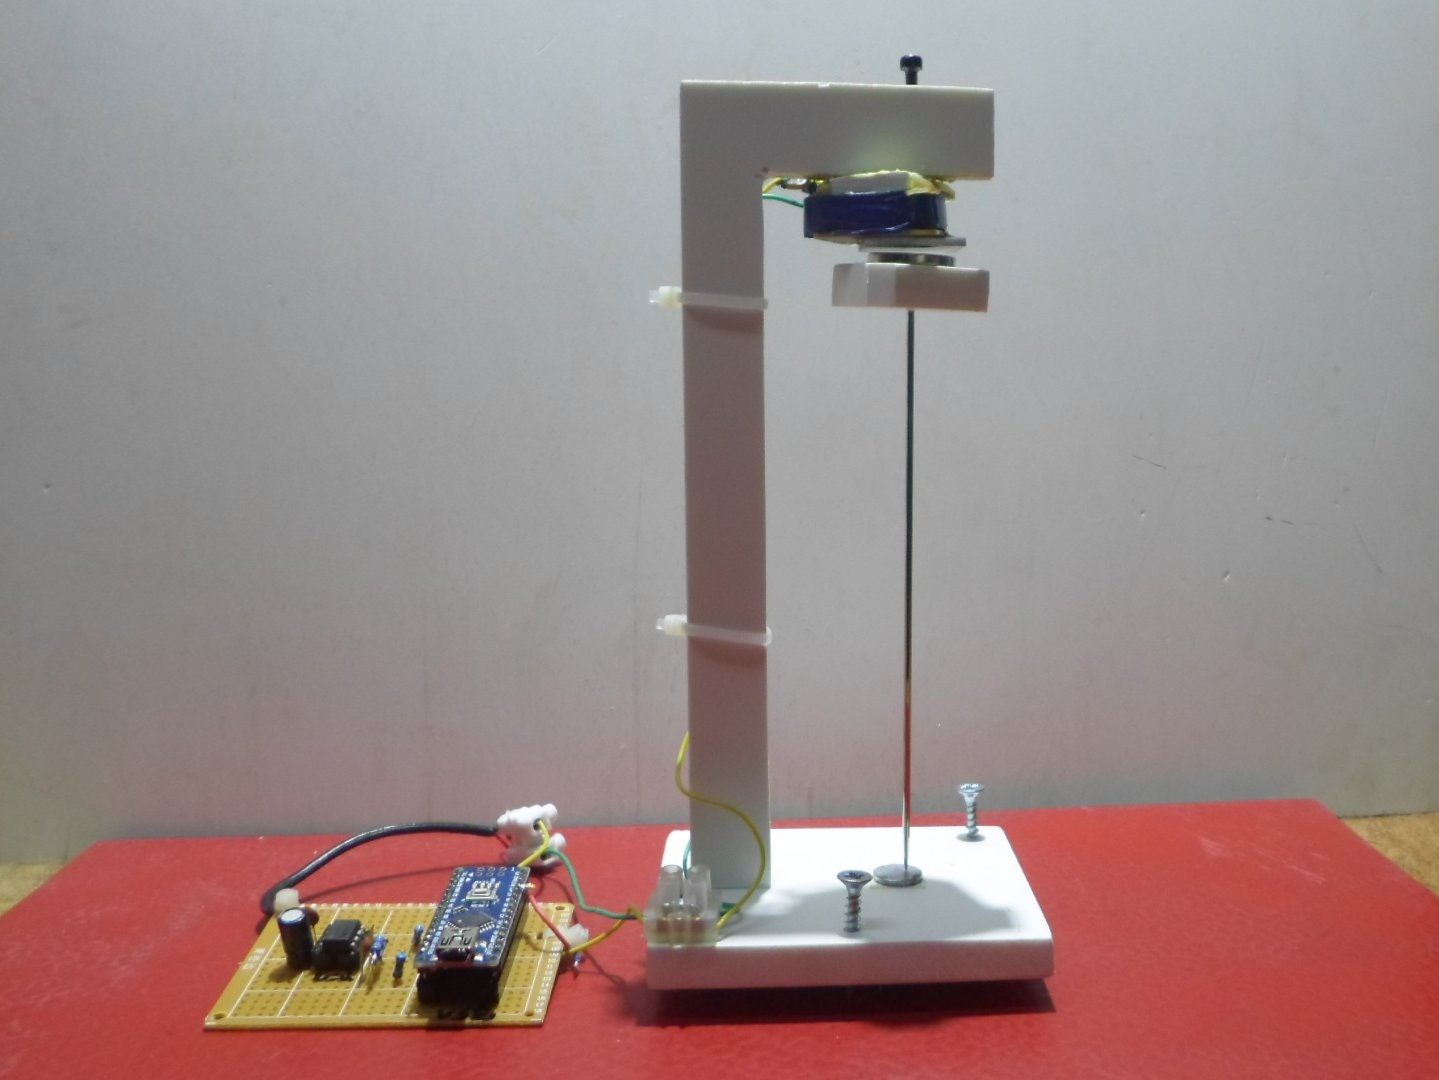 extremely sensitive cheap homemade seismometer arduino project hub Seismograph Read Out Diagram